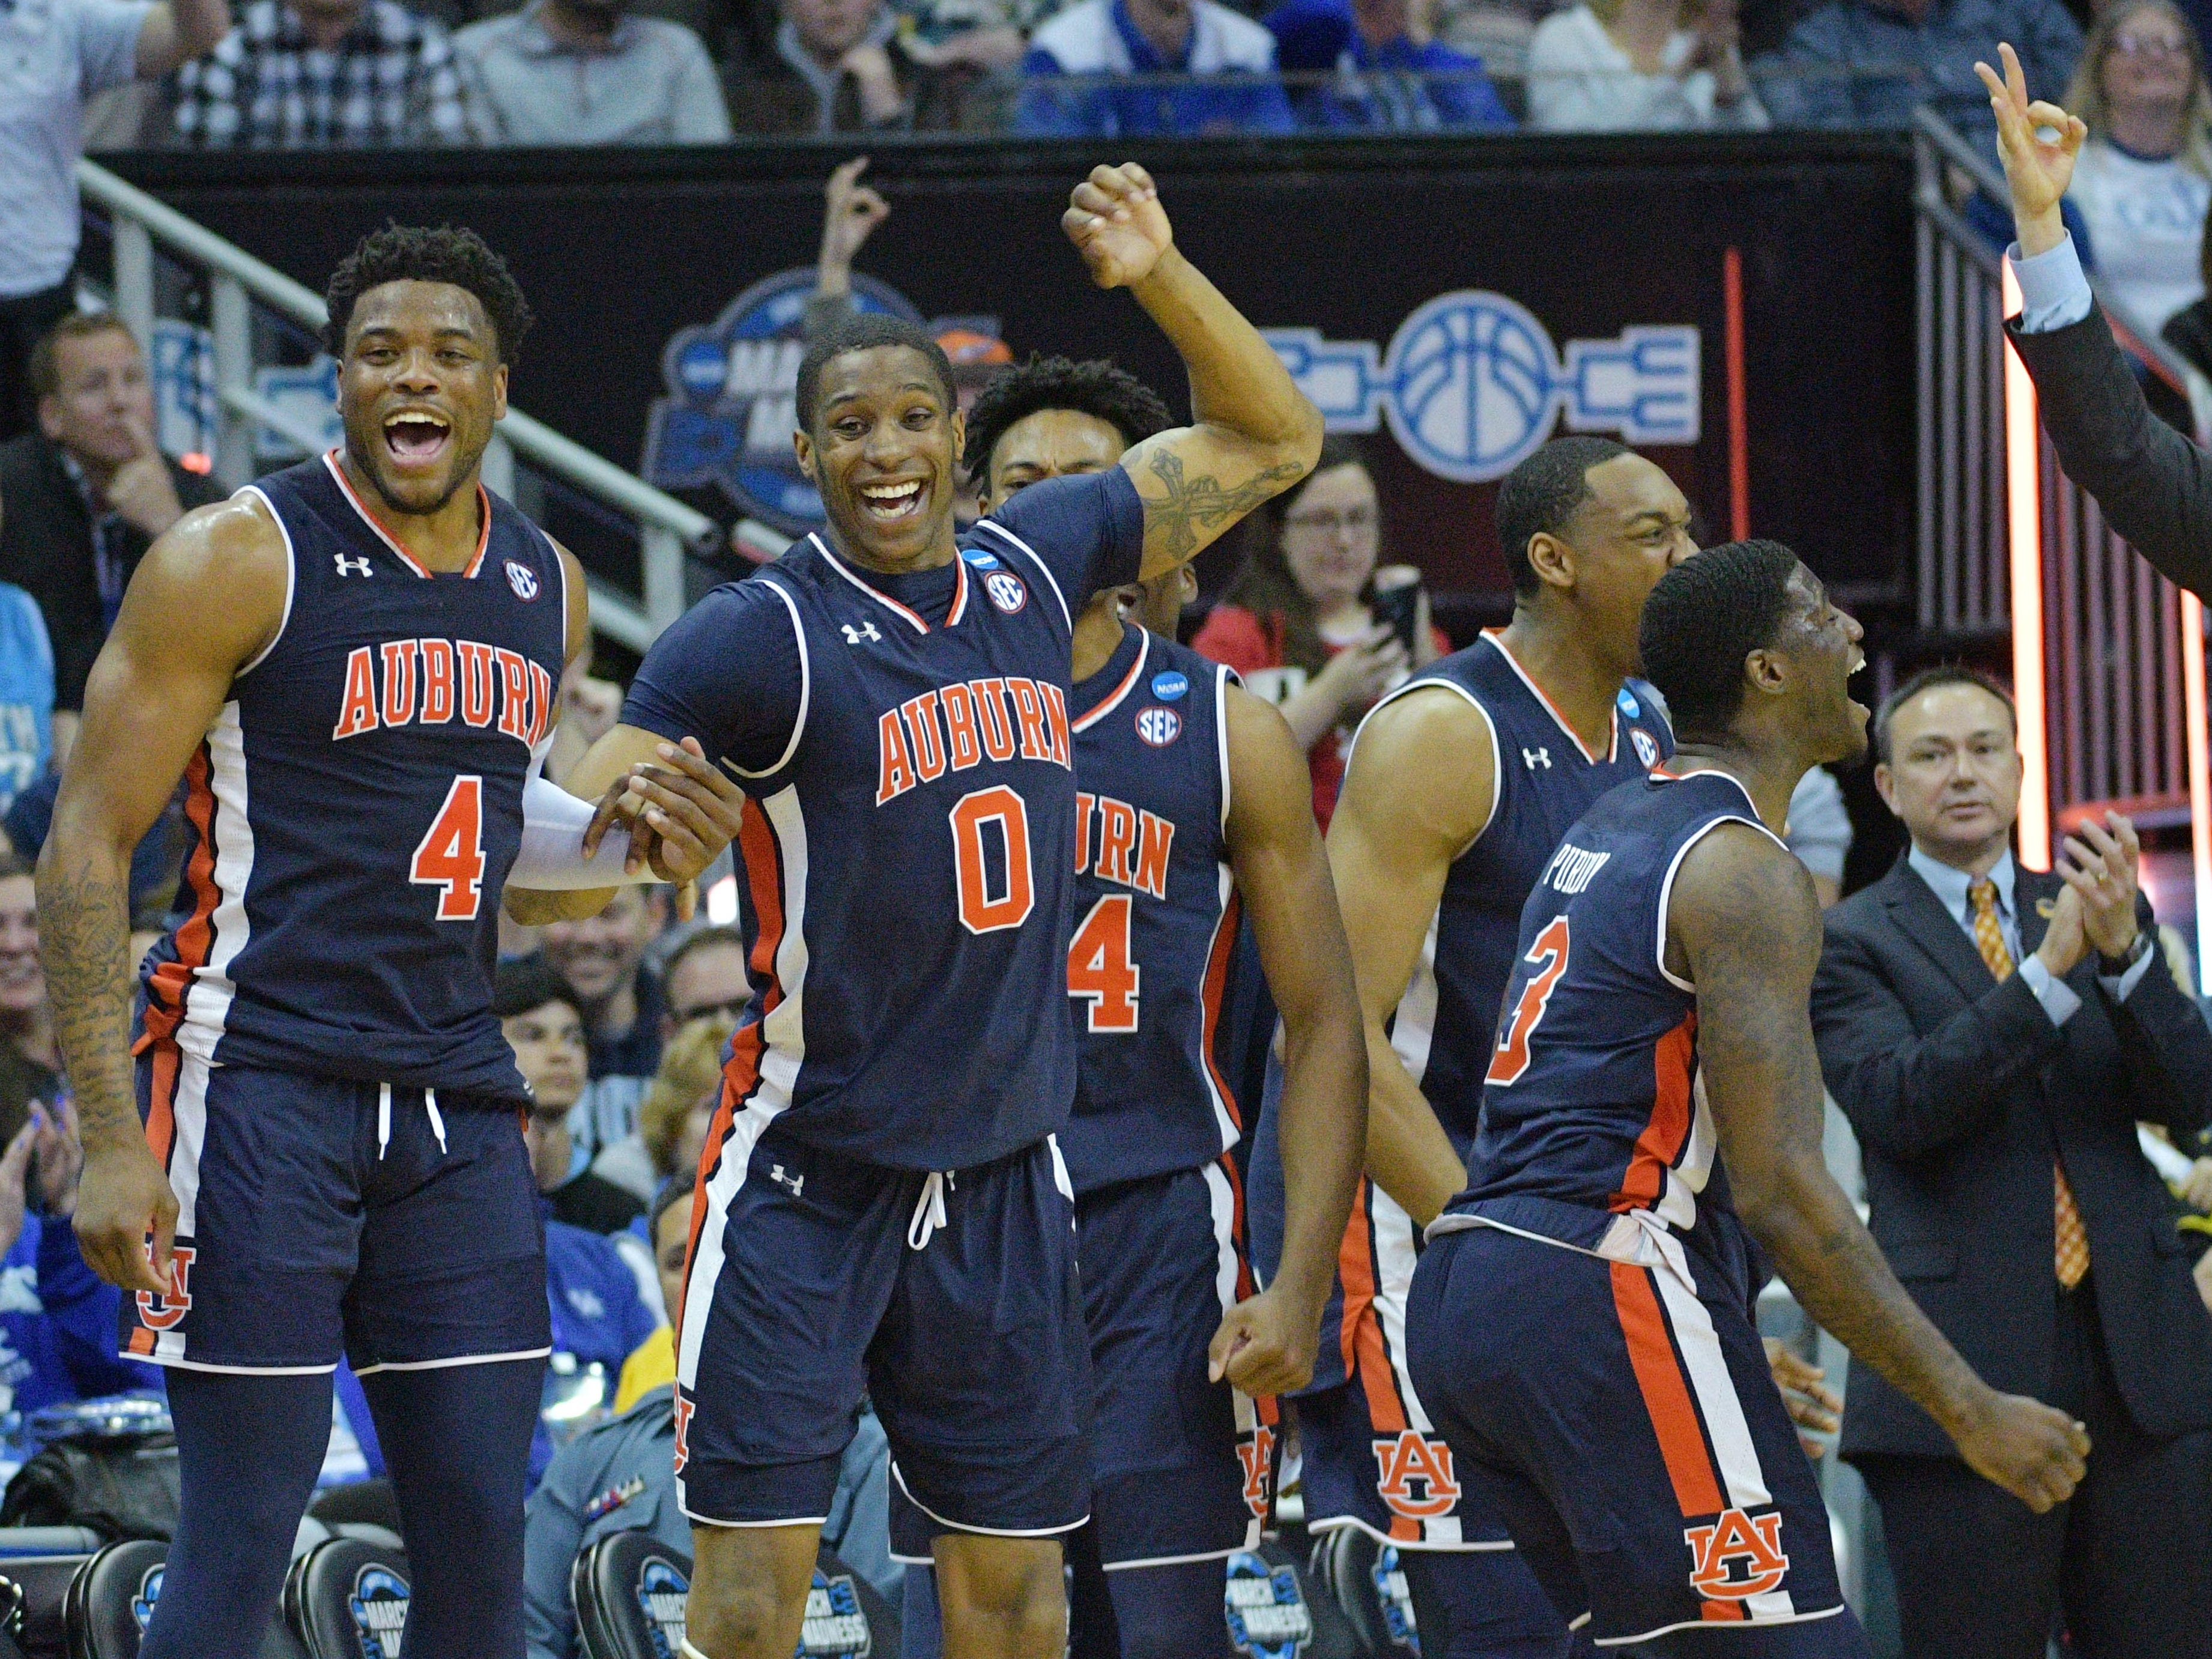 Auburn's Horace Spencer (0) and Malik Dunbar (4) celebrate against North Carolina during the second half in the semifinals of the midwest regional of the 2019 NCAA Tournament at Sprint Center.